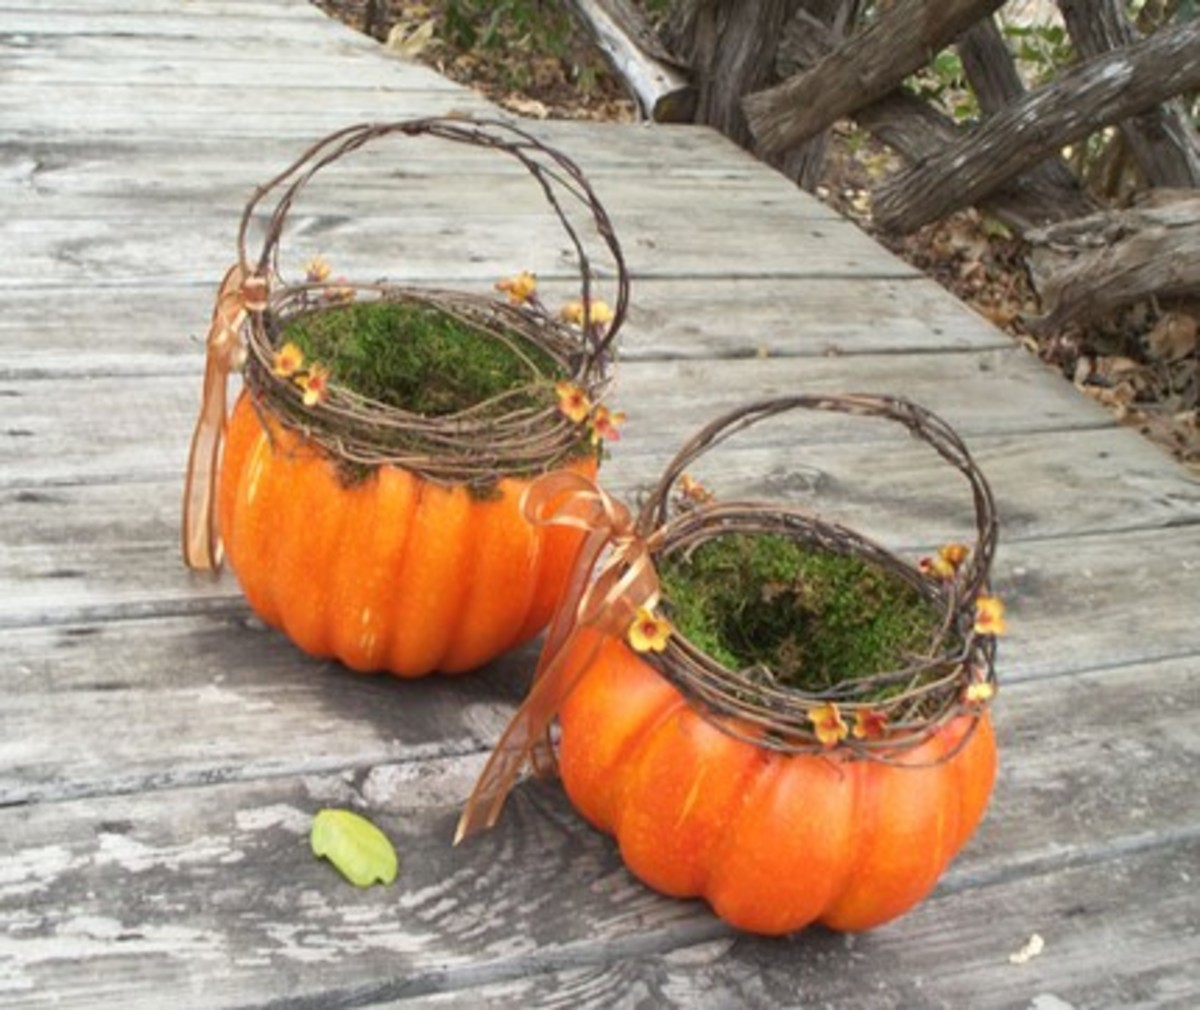 Pumpkin flower girl baskets - perfect for Halloween